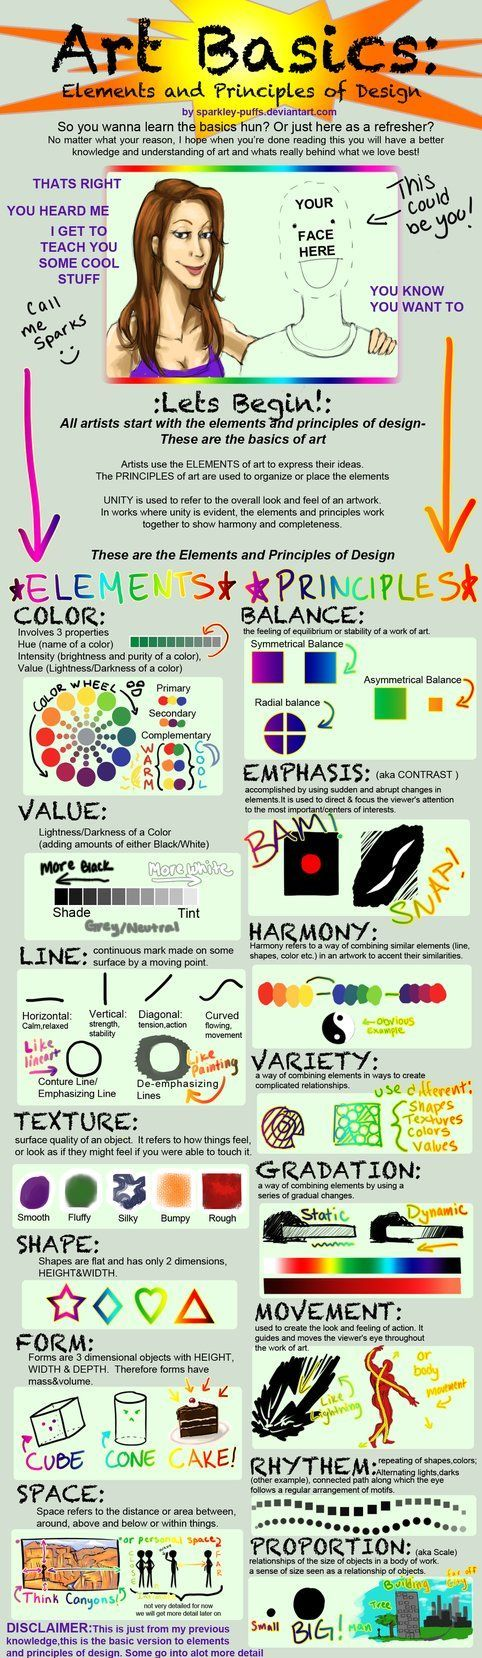 elements and principles | Elements+Principles of Design by *TheCuddlyKoalaWhale on deviantART